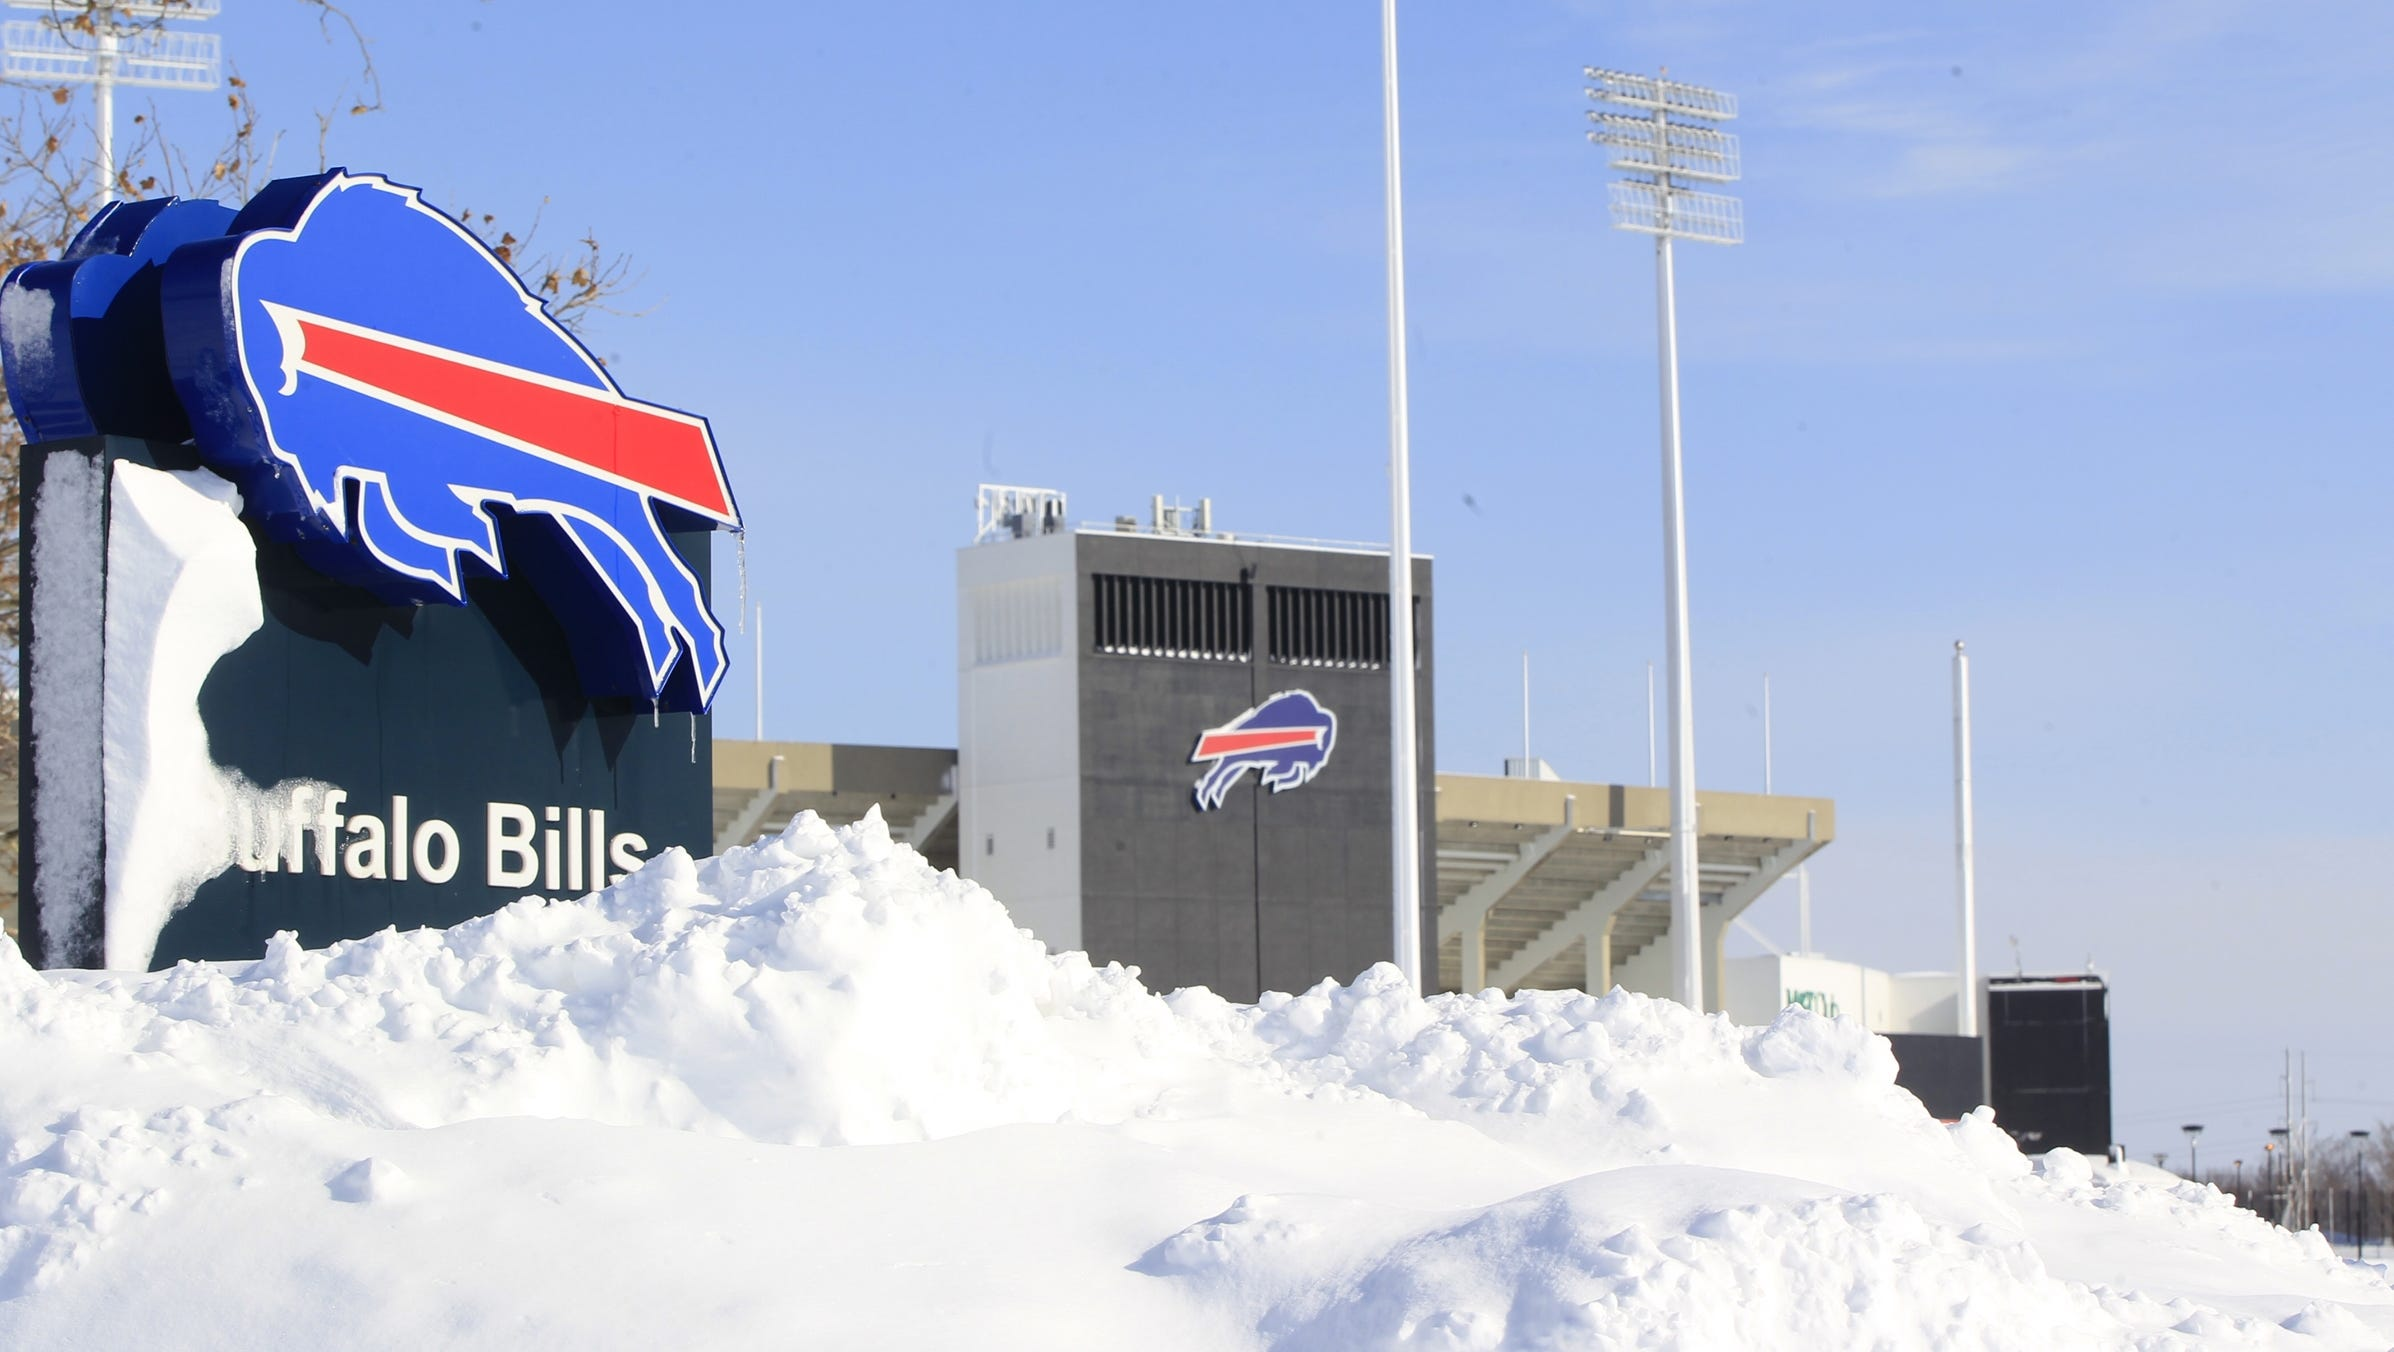 Ford Field Will Host Bills Jets Game On Monday Night